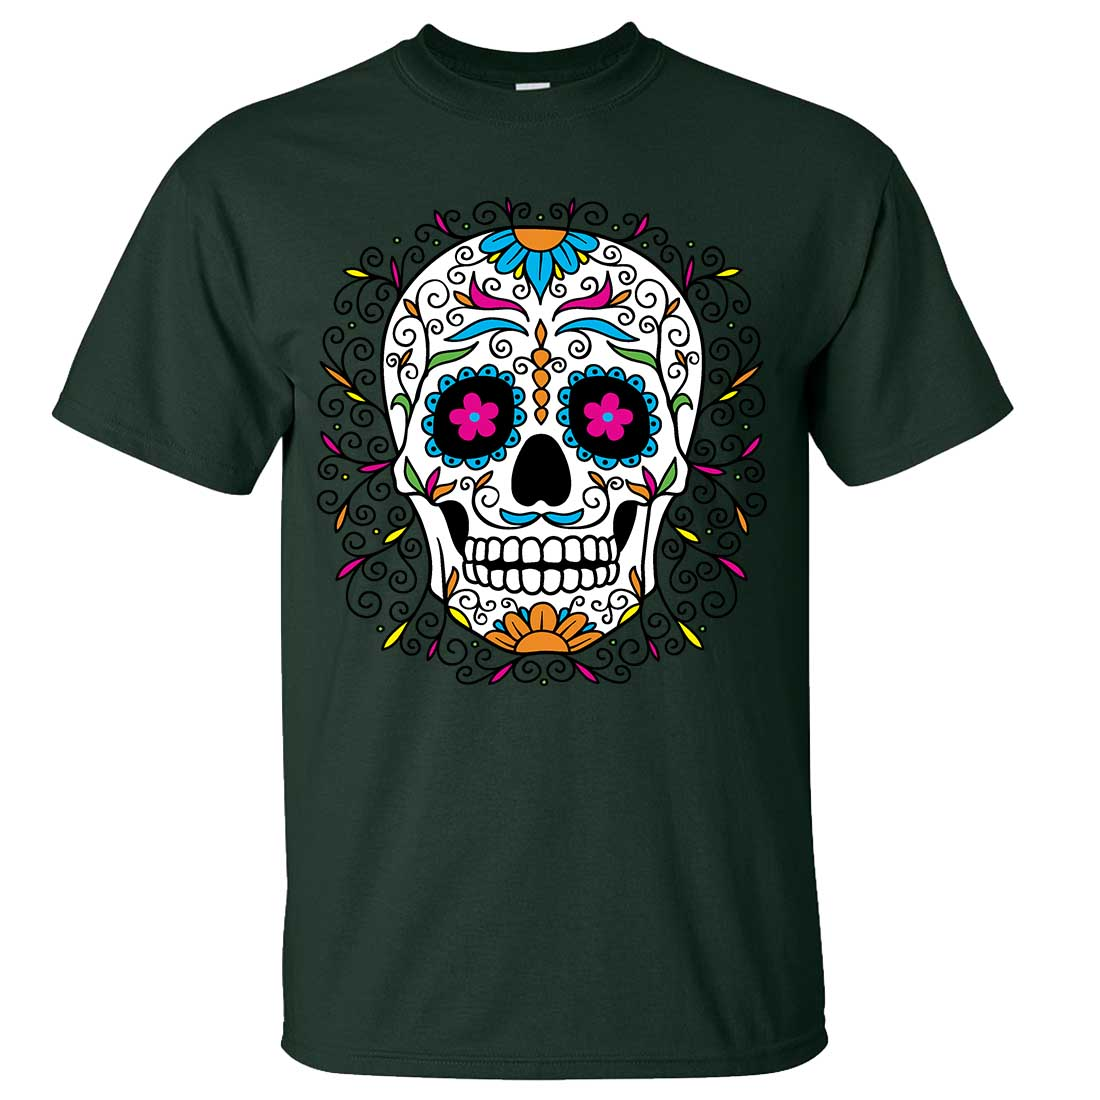 Dia de los muertos pastel sugar skull asst colors t shirt tee for Pastel colored men s t shirts